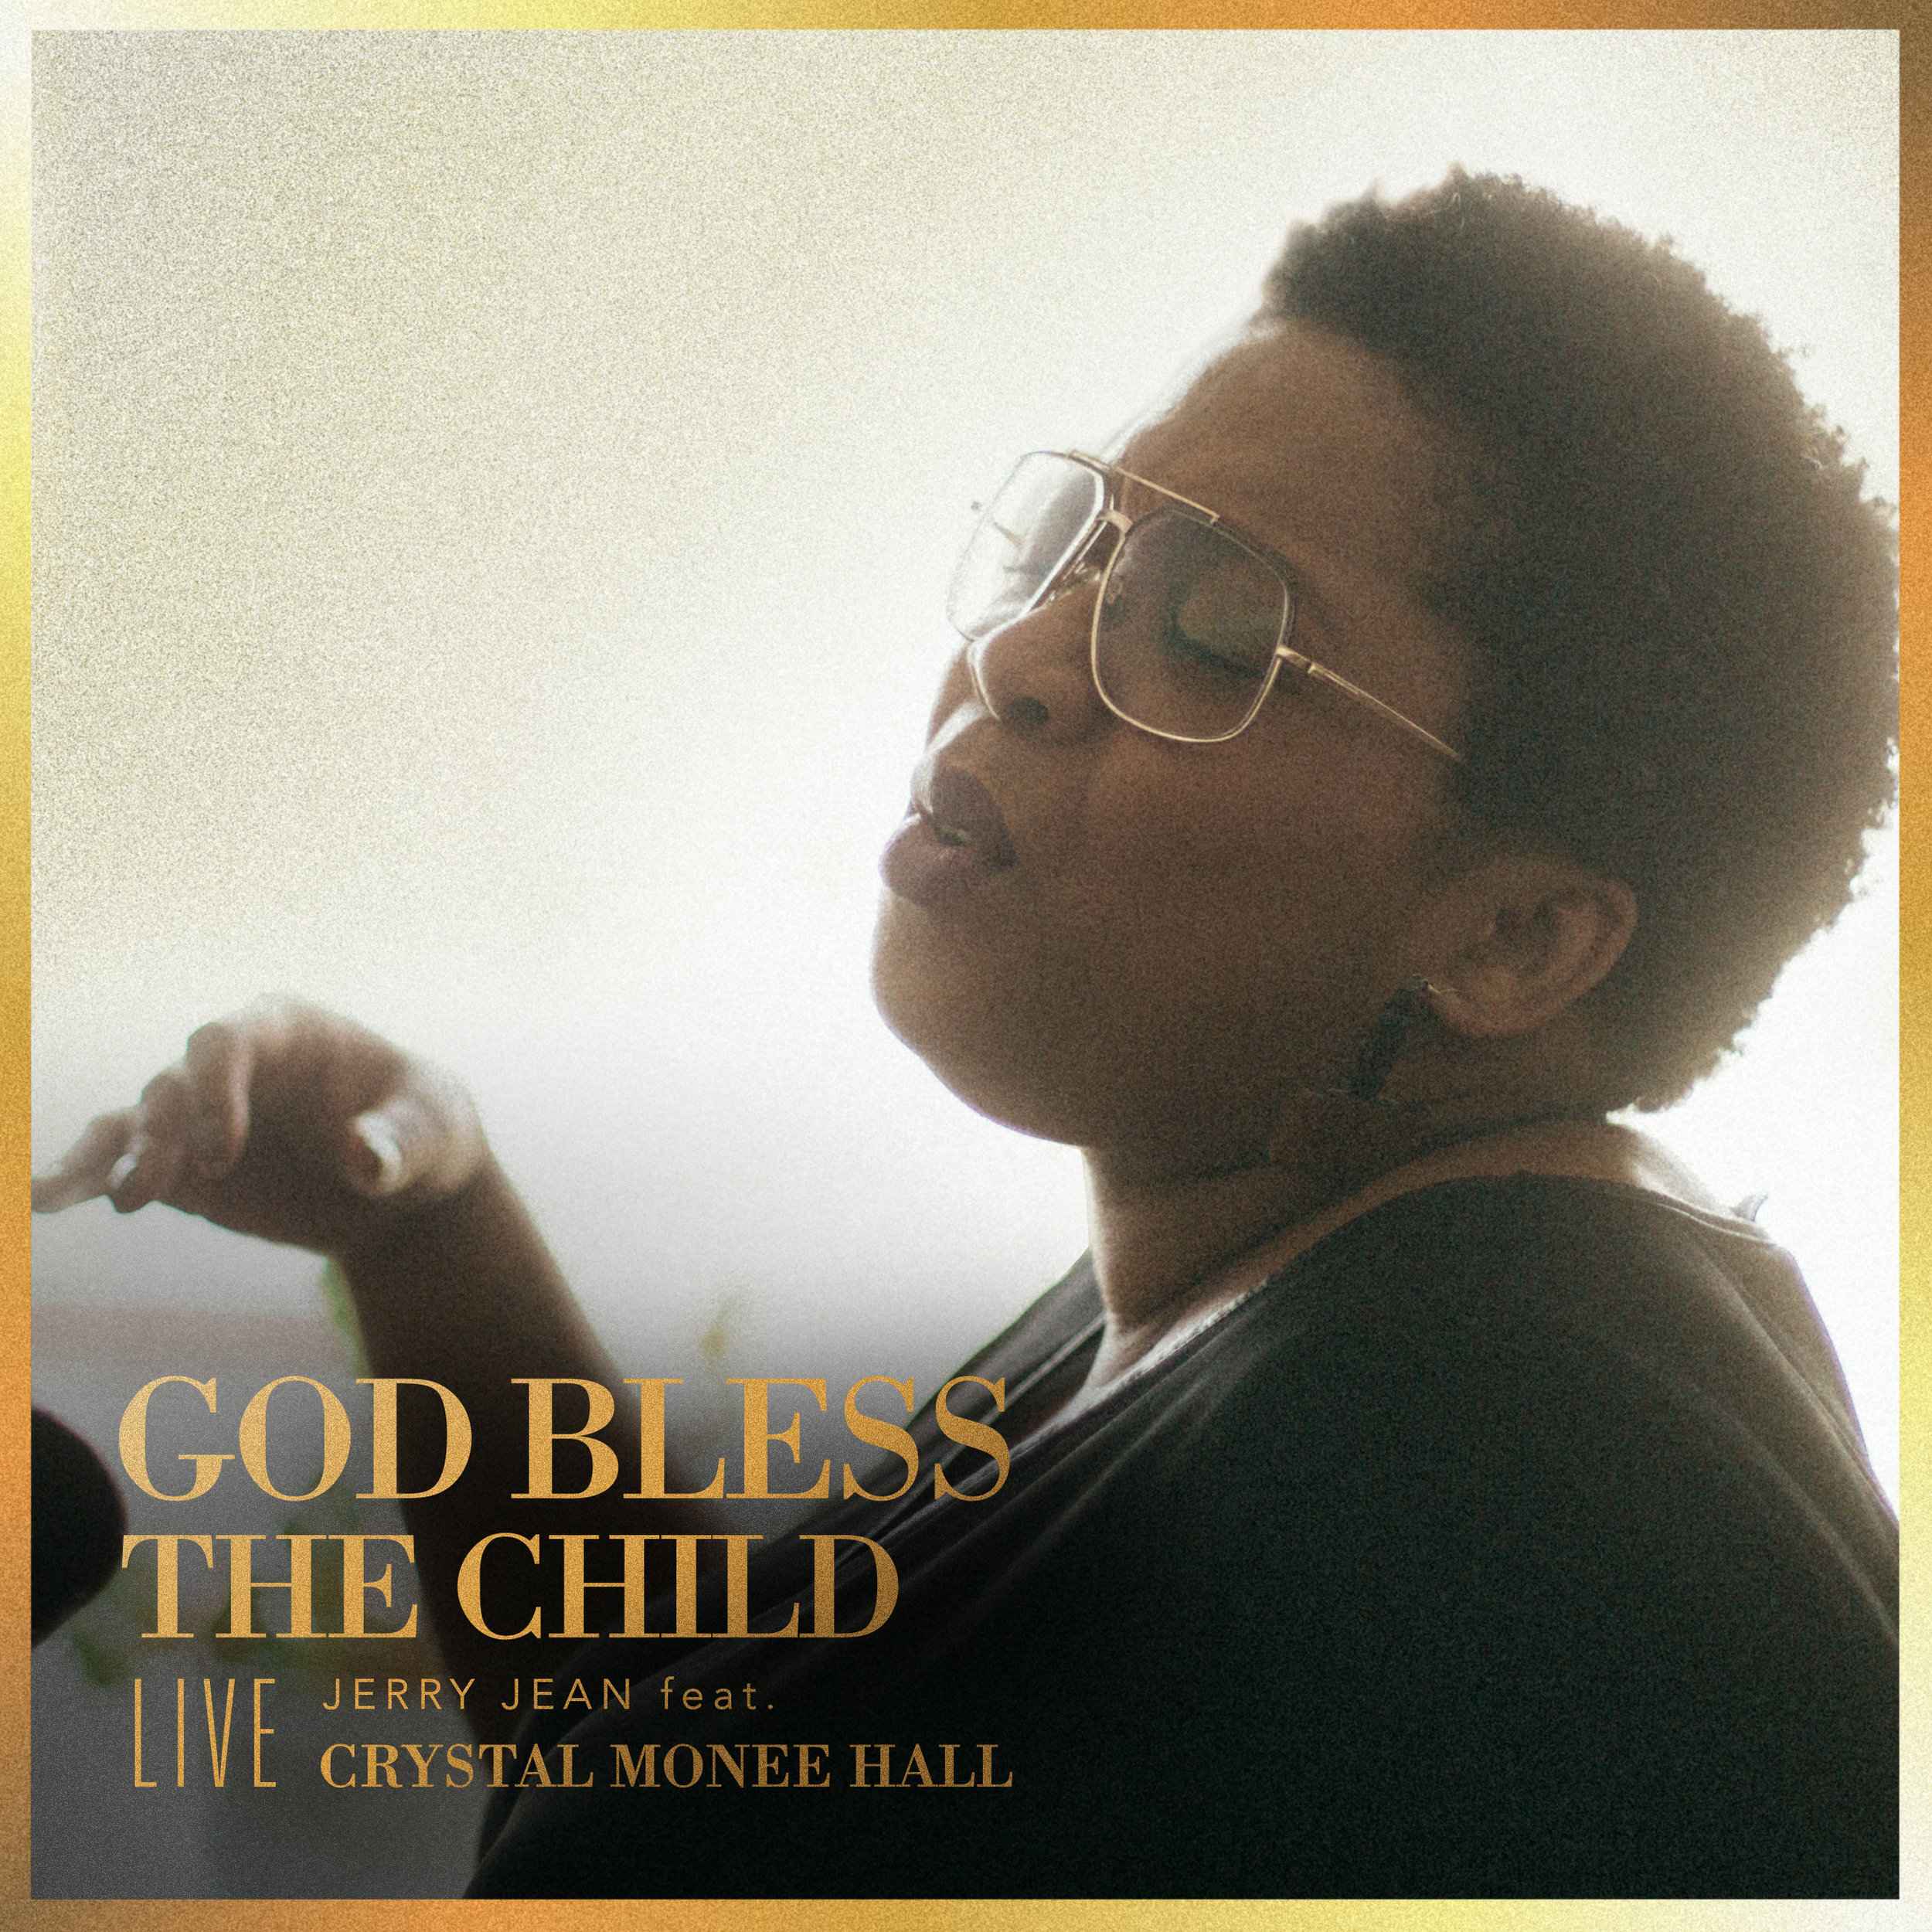 God Bless the Child (Live) [Jerry Jean feat. Crystal Monee Hall]